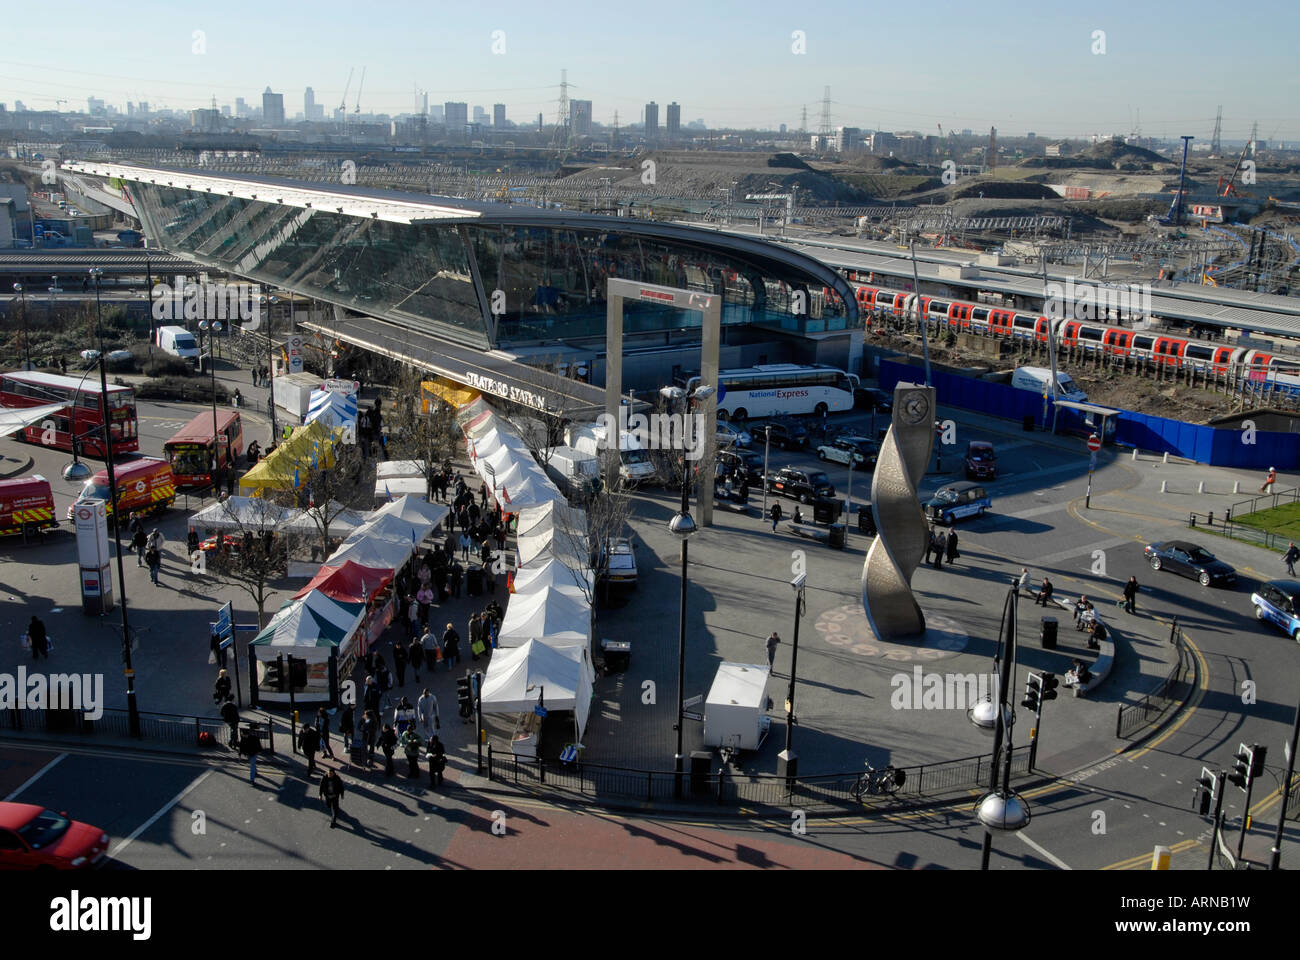 UK Stratford Station With Olympic Park Construction In Background